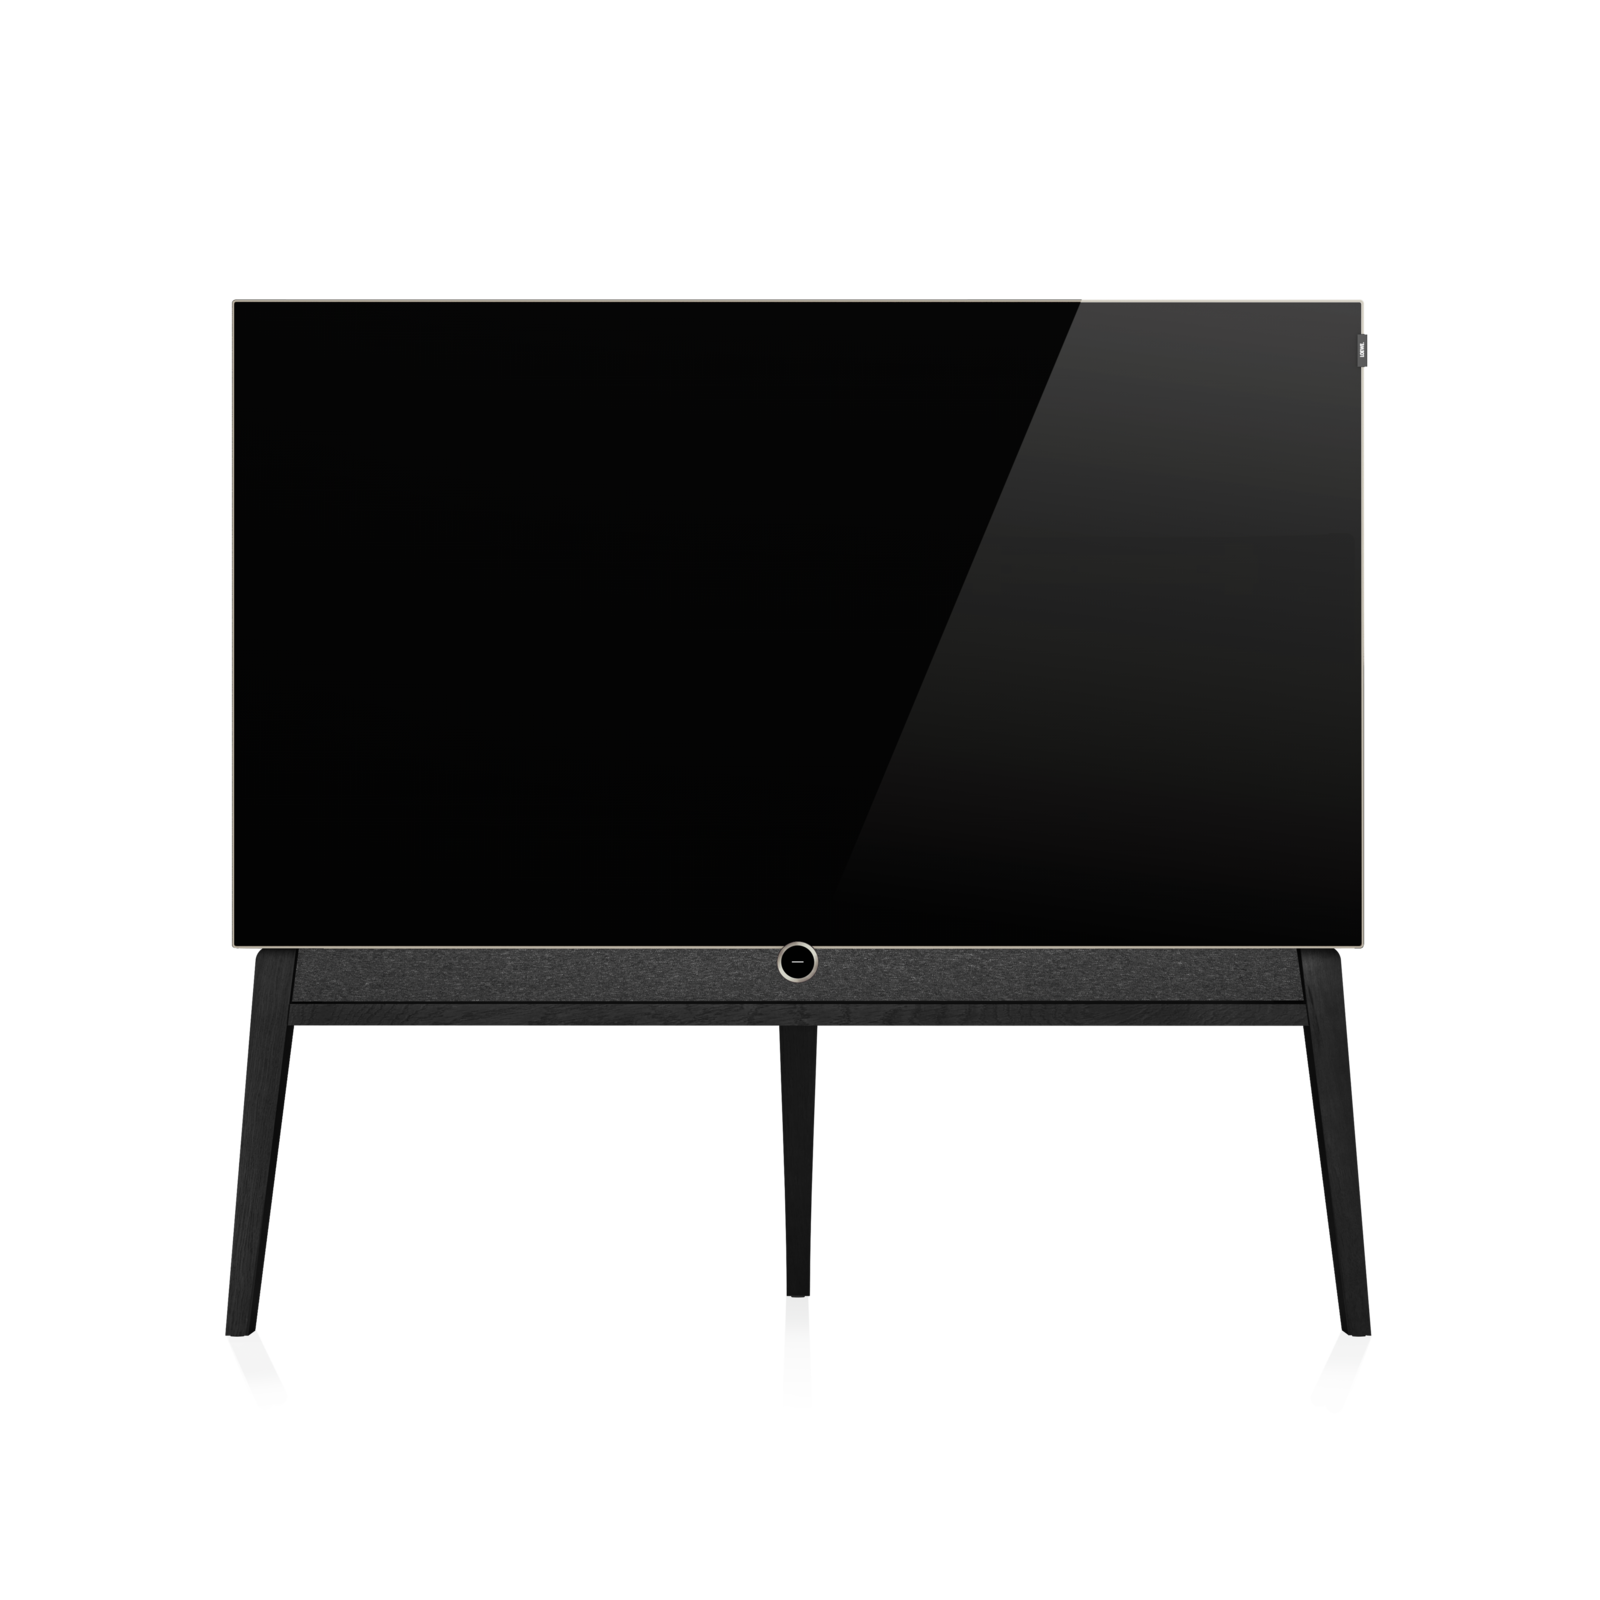 loewe bild 5 oled 55 4k smart tv home media. Black Bedroom Furniture Sets. Home Design Ideas